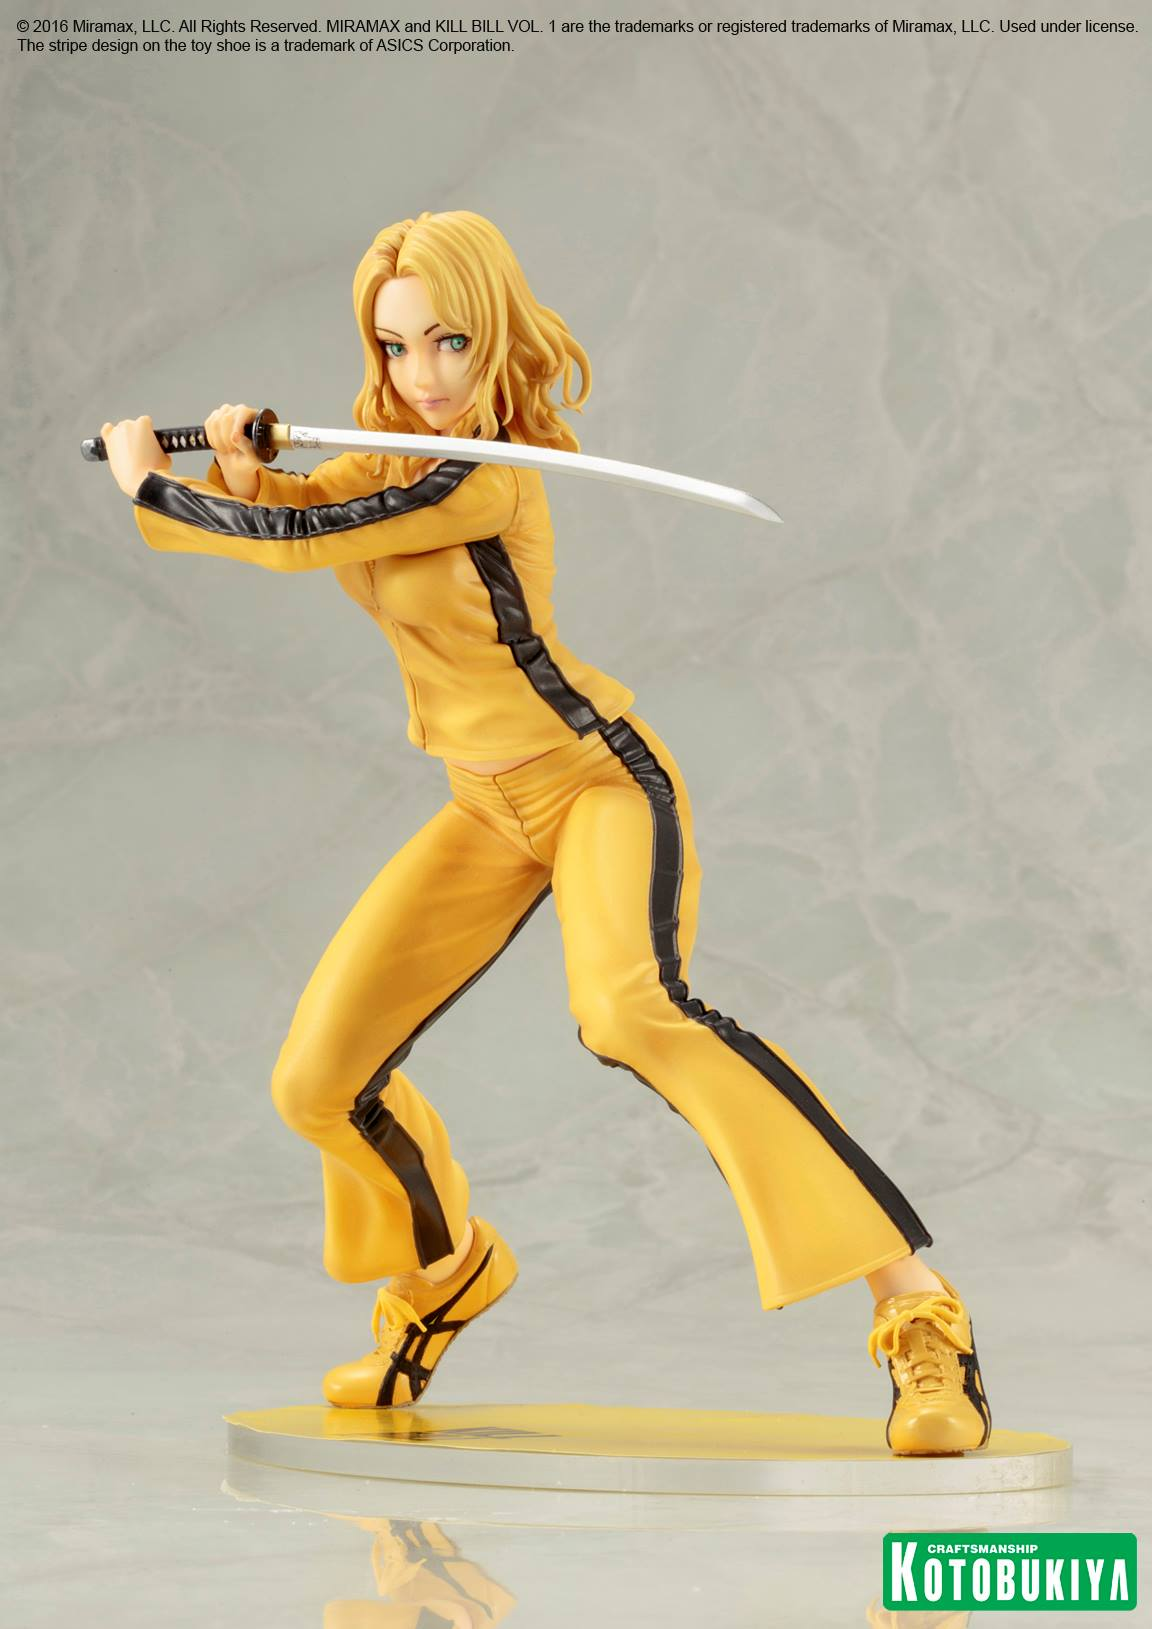 kill-bill-the-bride-bishouoj-statue-kotobukiya-1